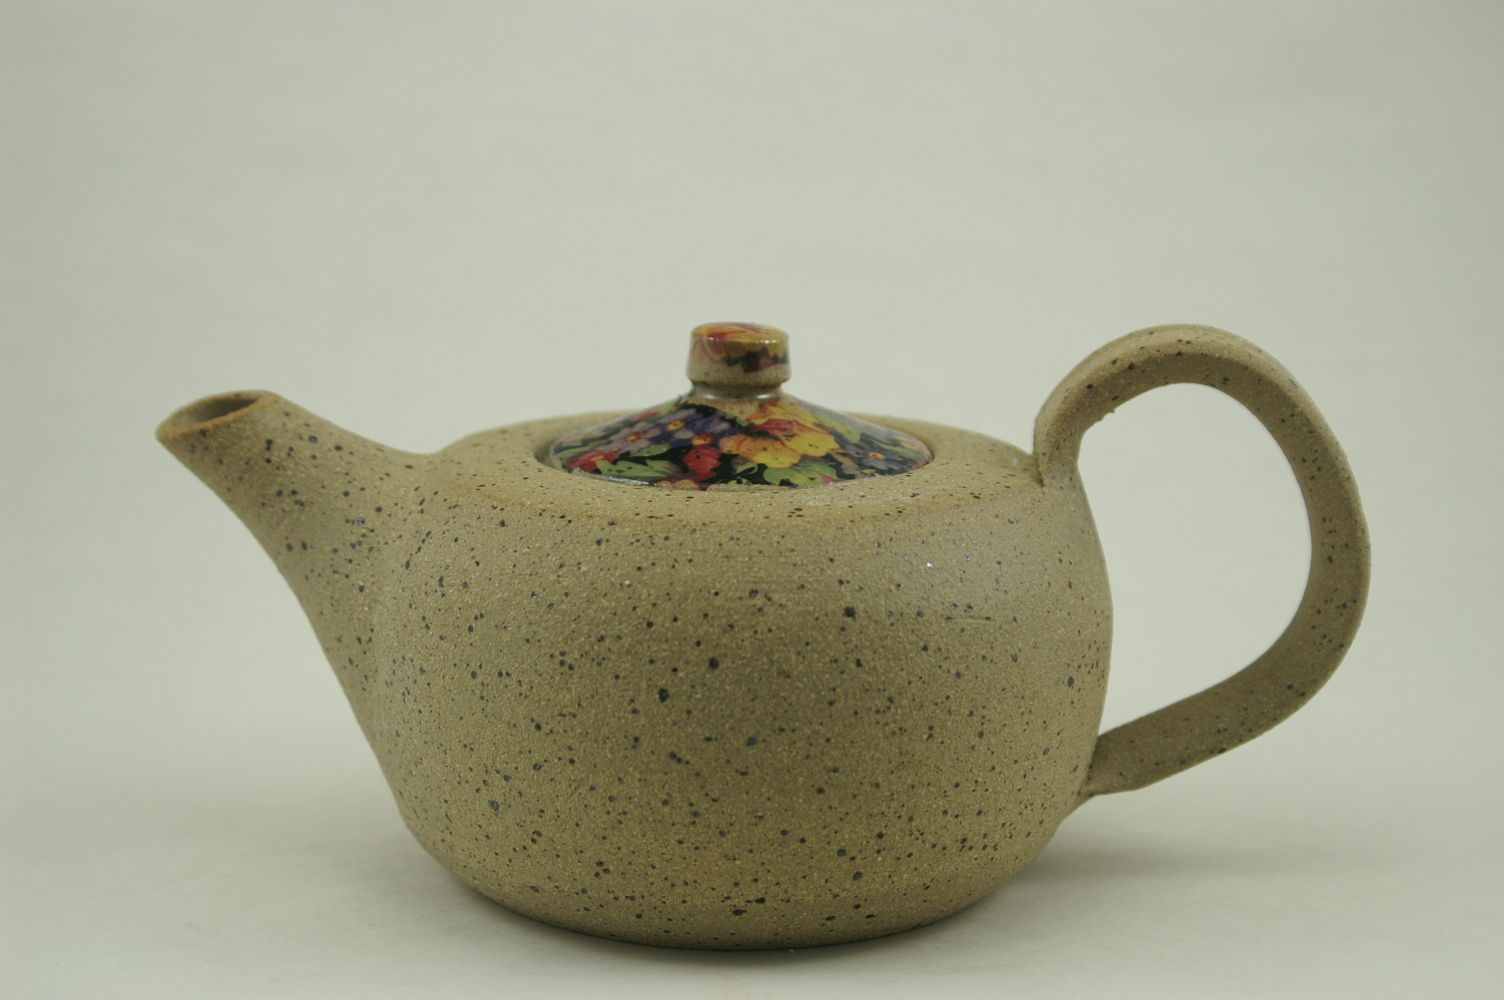 Teapot ^6, liner glaze, vintage decals on lid.